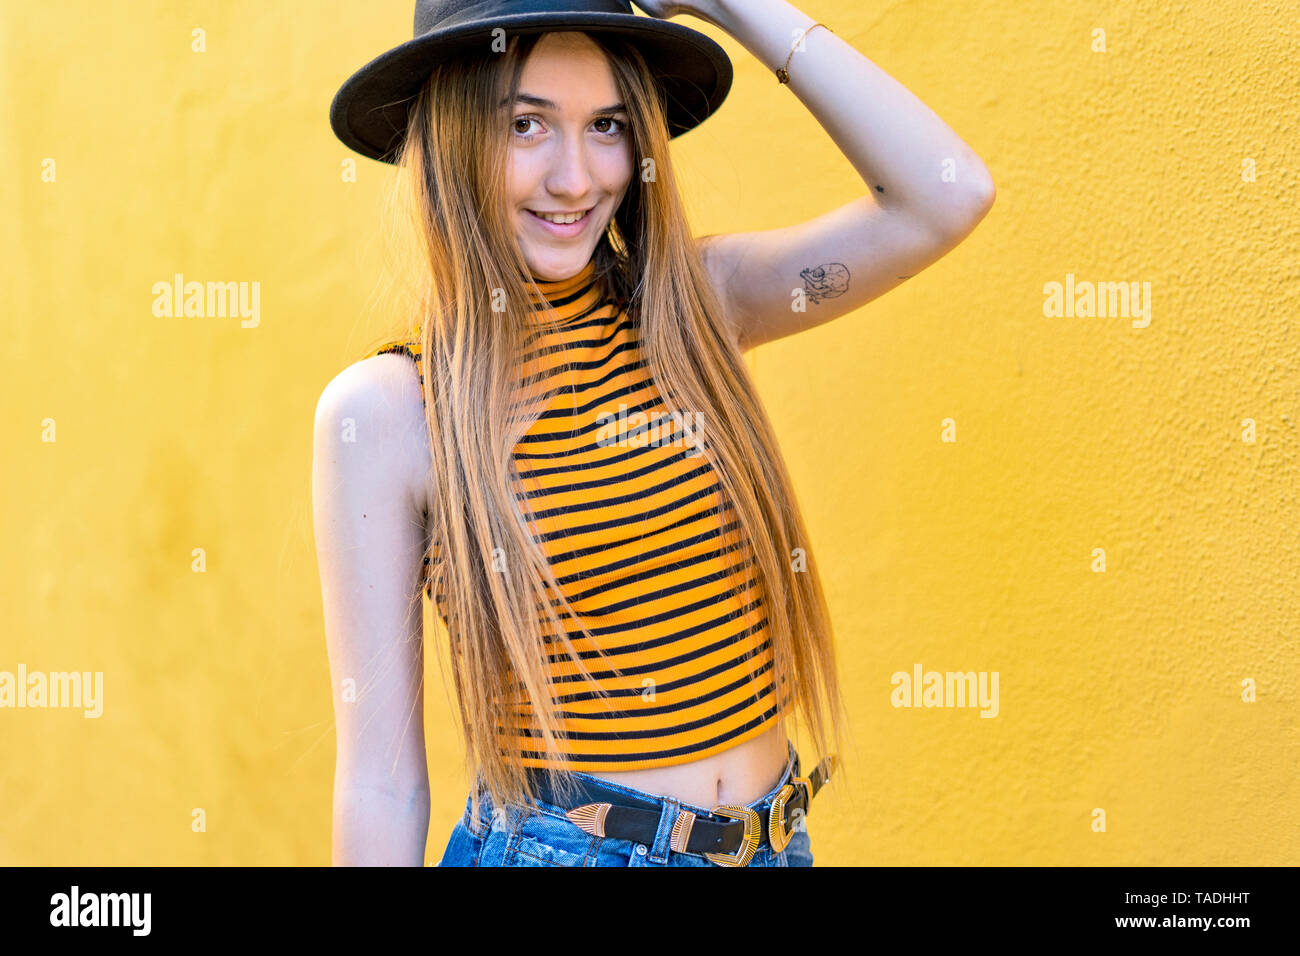 Portrait of smiling teenage girl wearing hat at yellow wall - Stock Image